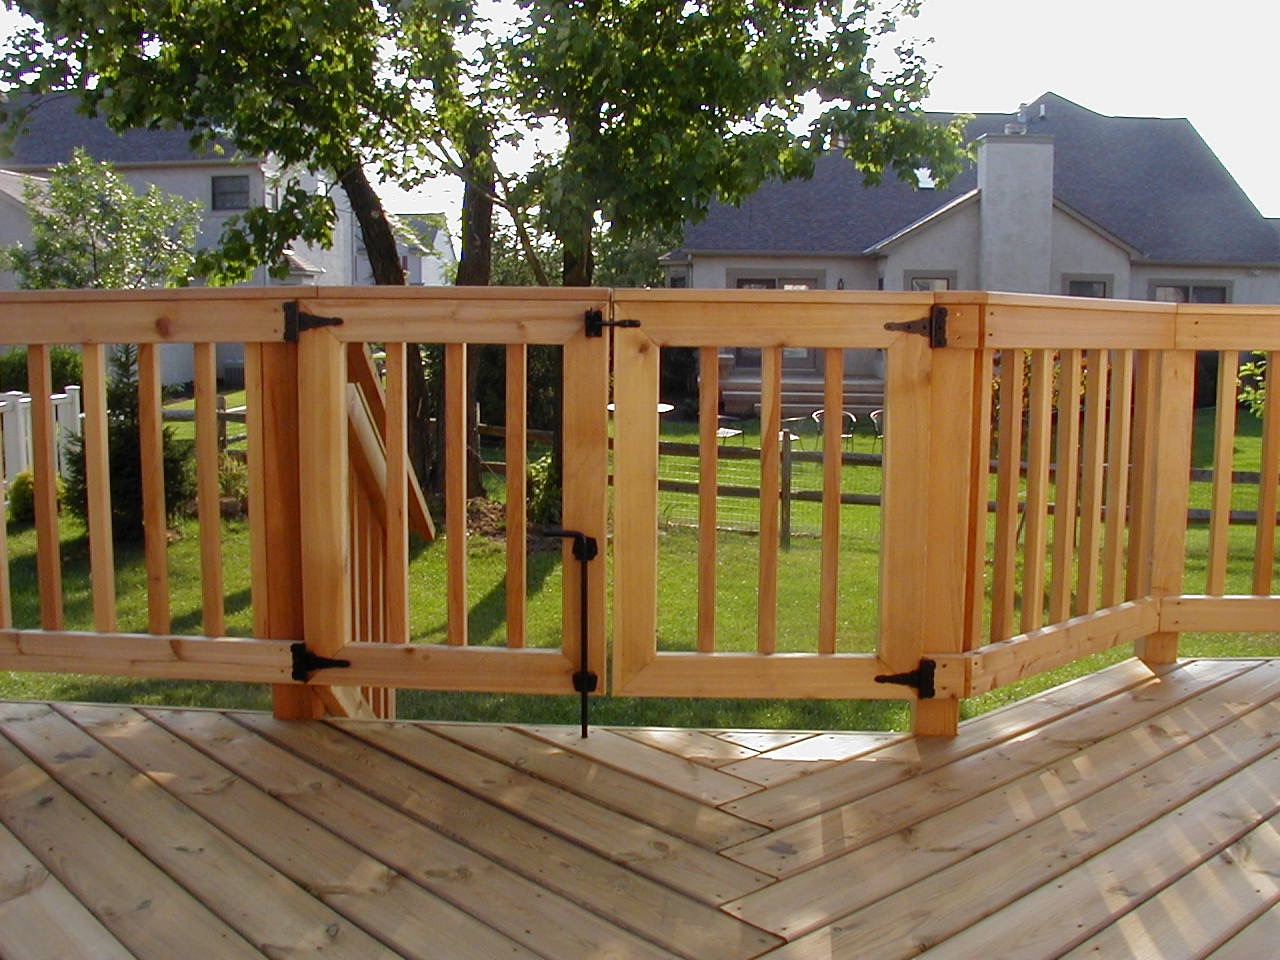 Deck railing ideas how to choose the best rail design for your deck rail with safety gate by archadeck baanklon Gallery